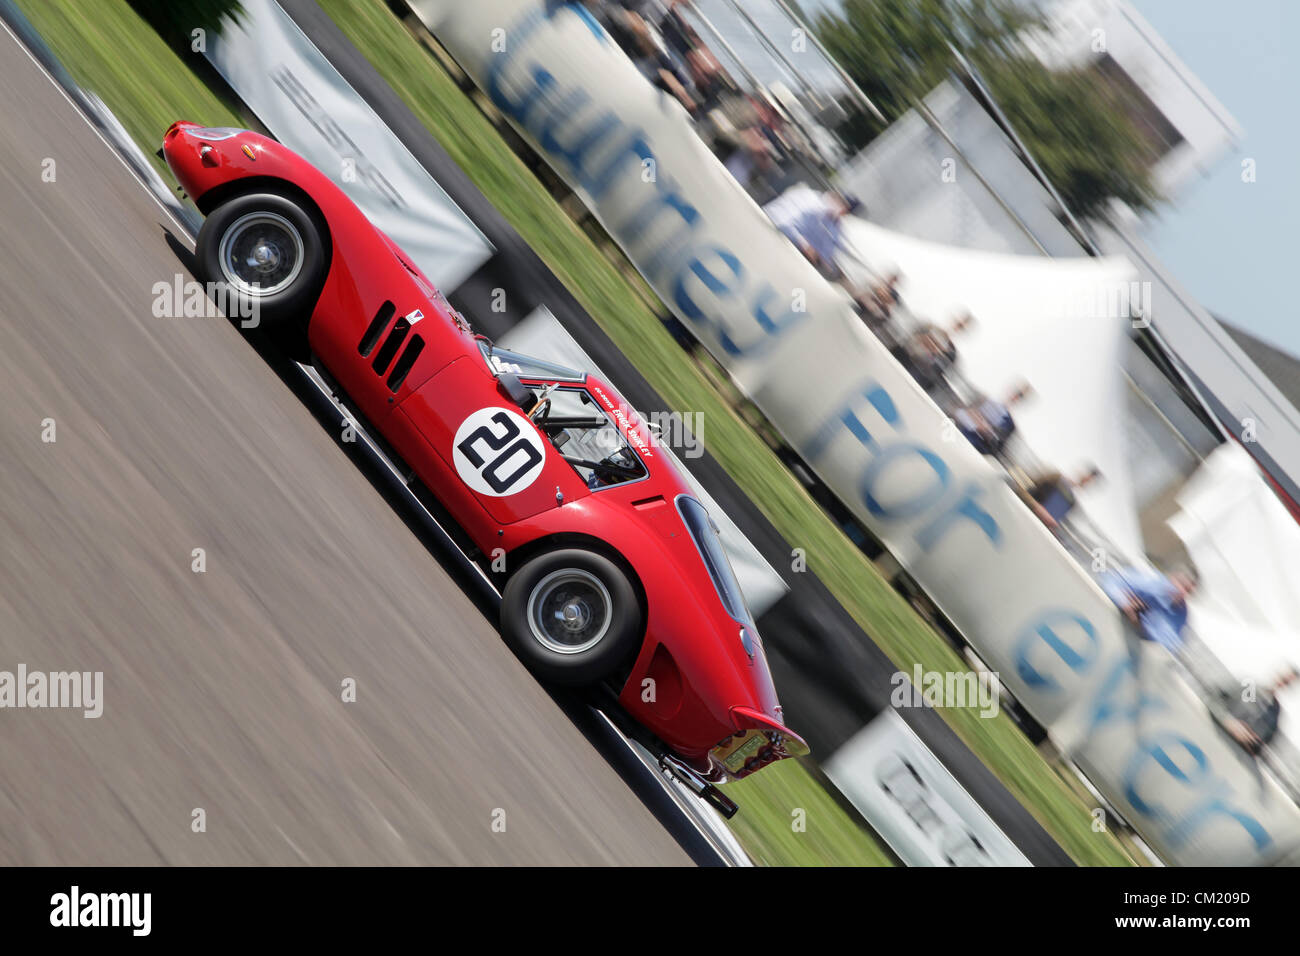 Goodwood Estate, Chichester, UK. 15th September 2012. Derek Bell driving a 1962 Ferrari GTO during the RAC TT Celebration. - Stock Image